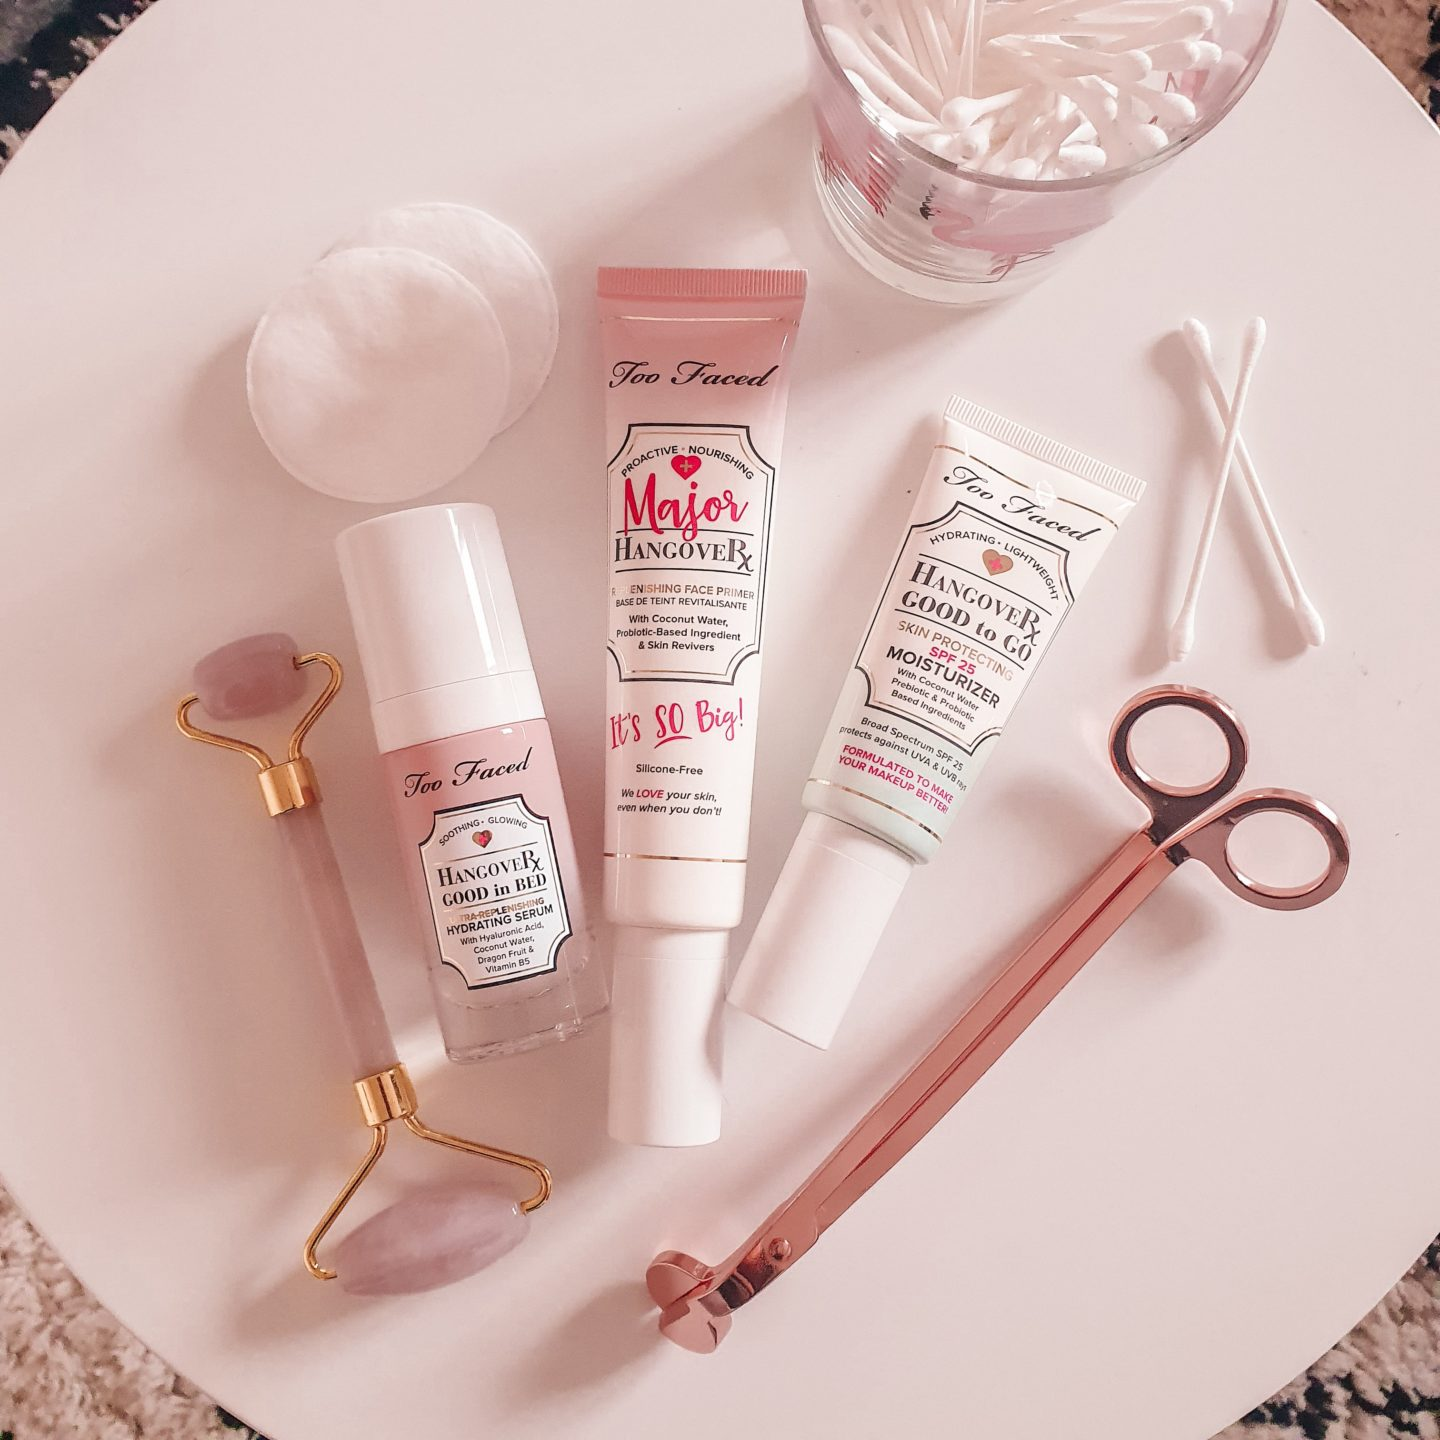 Too Faced Hangover Skincare Review